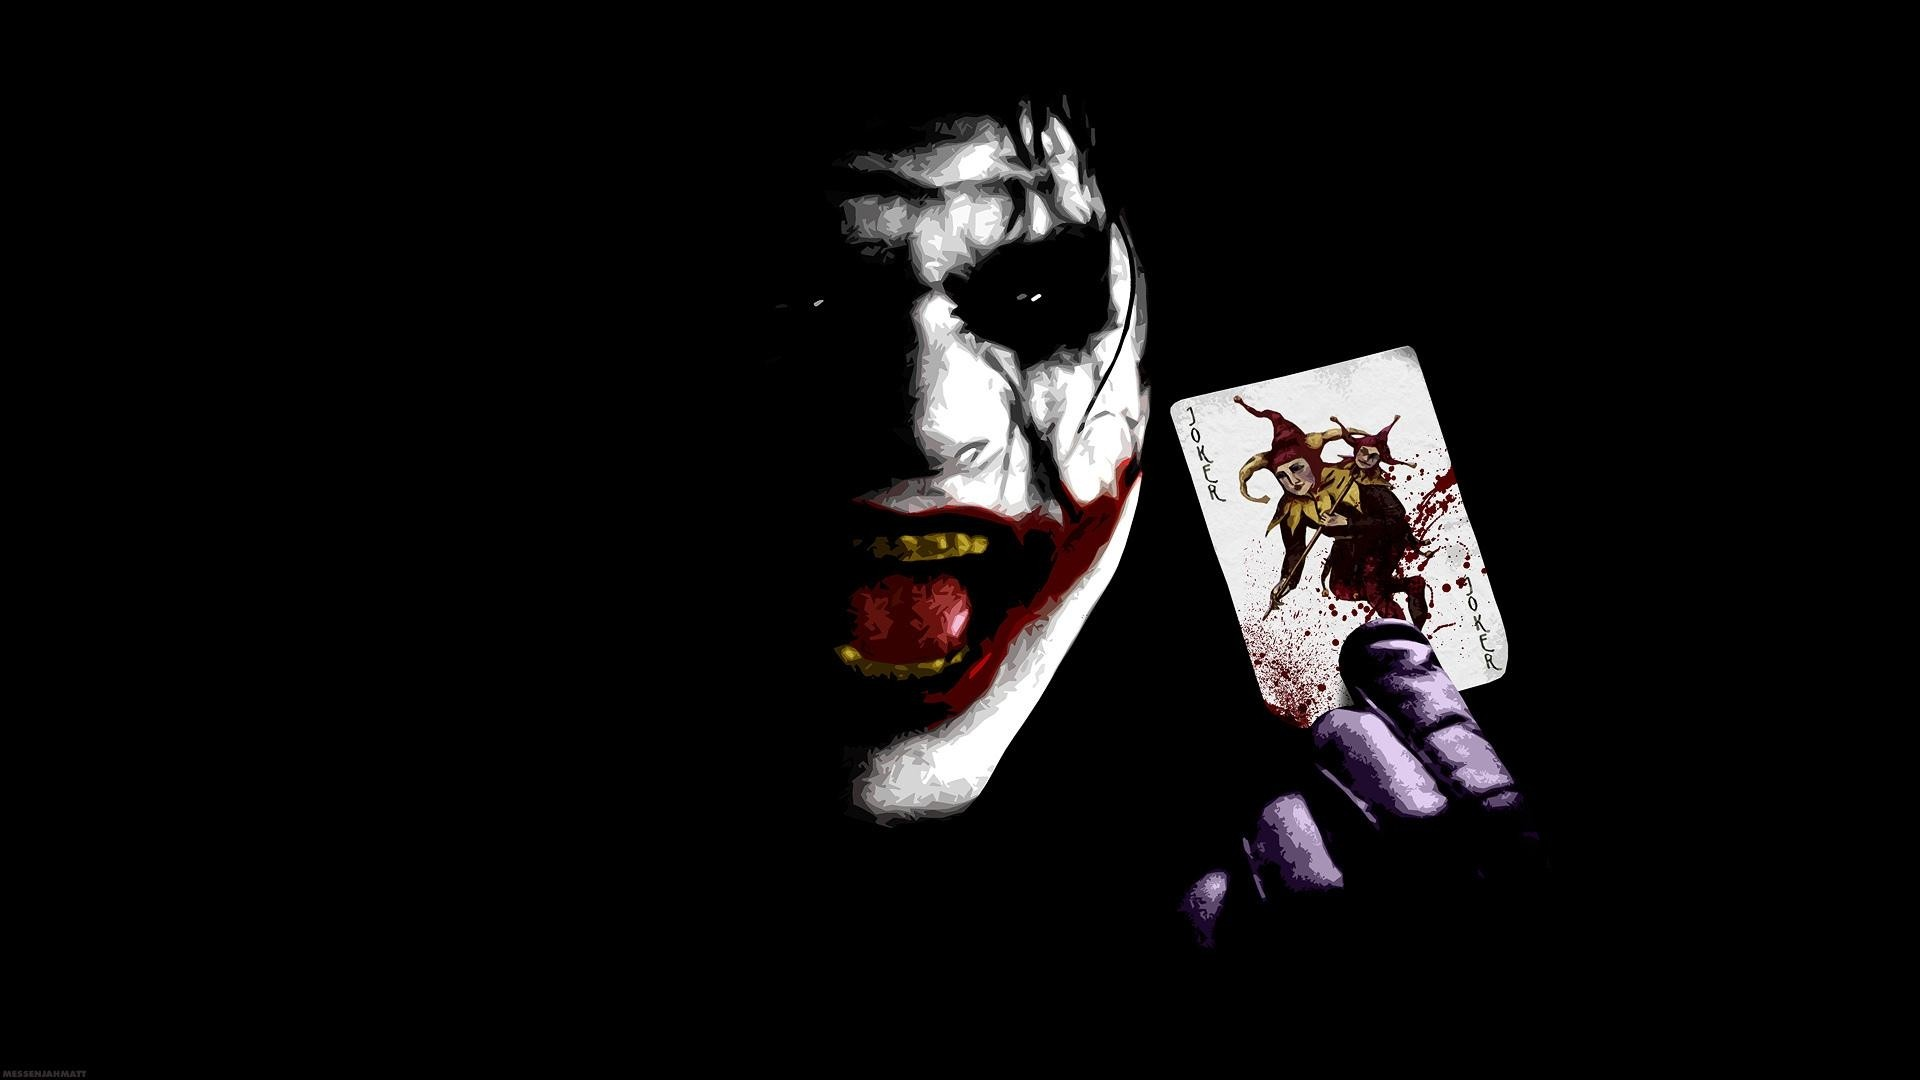 Joker Cool Backgrounds Hd – Images 52